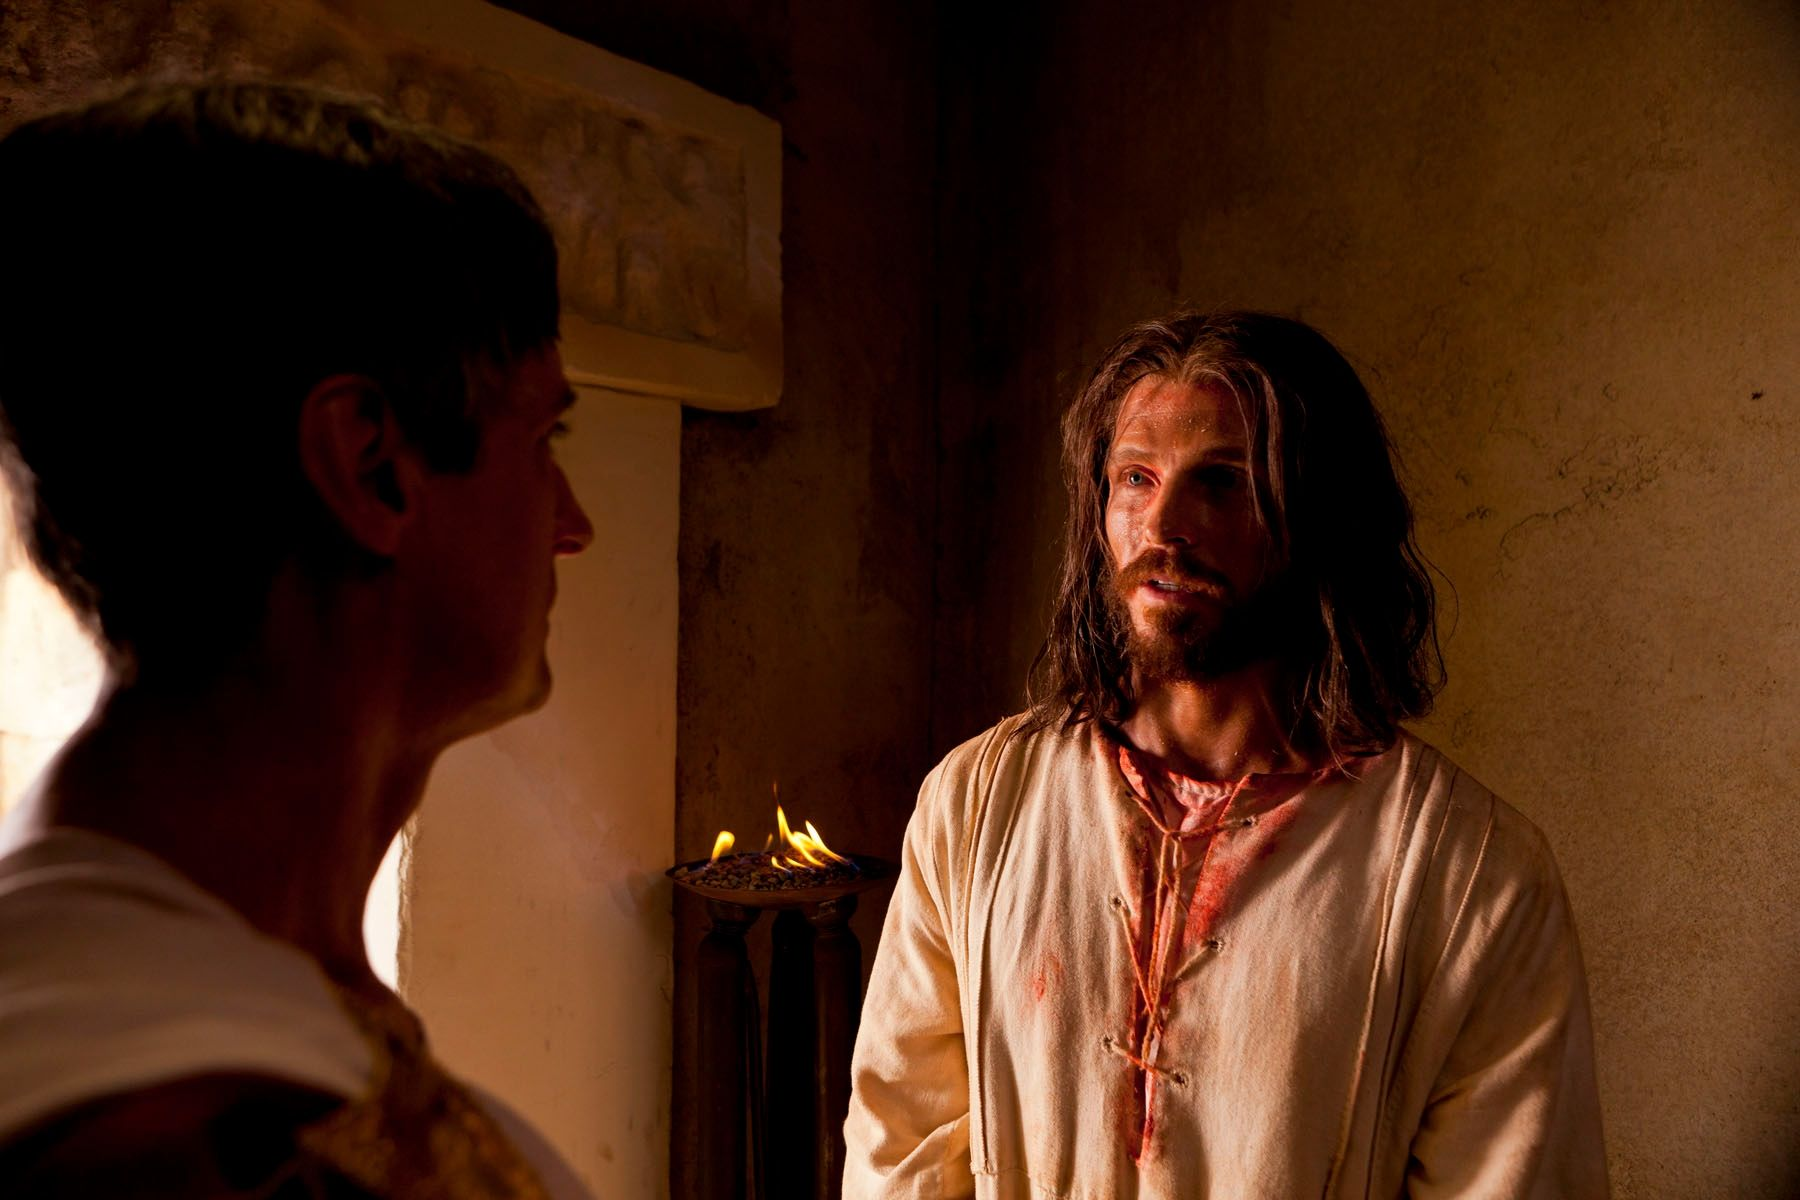 Christ meets with Pilate in private after being condemned.